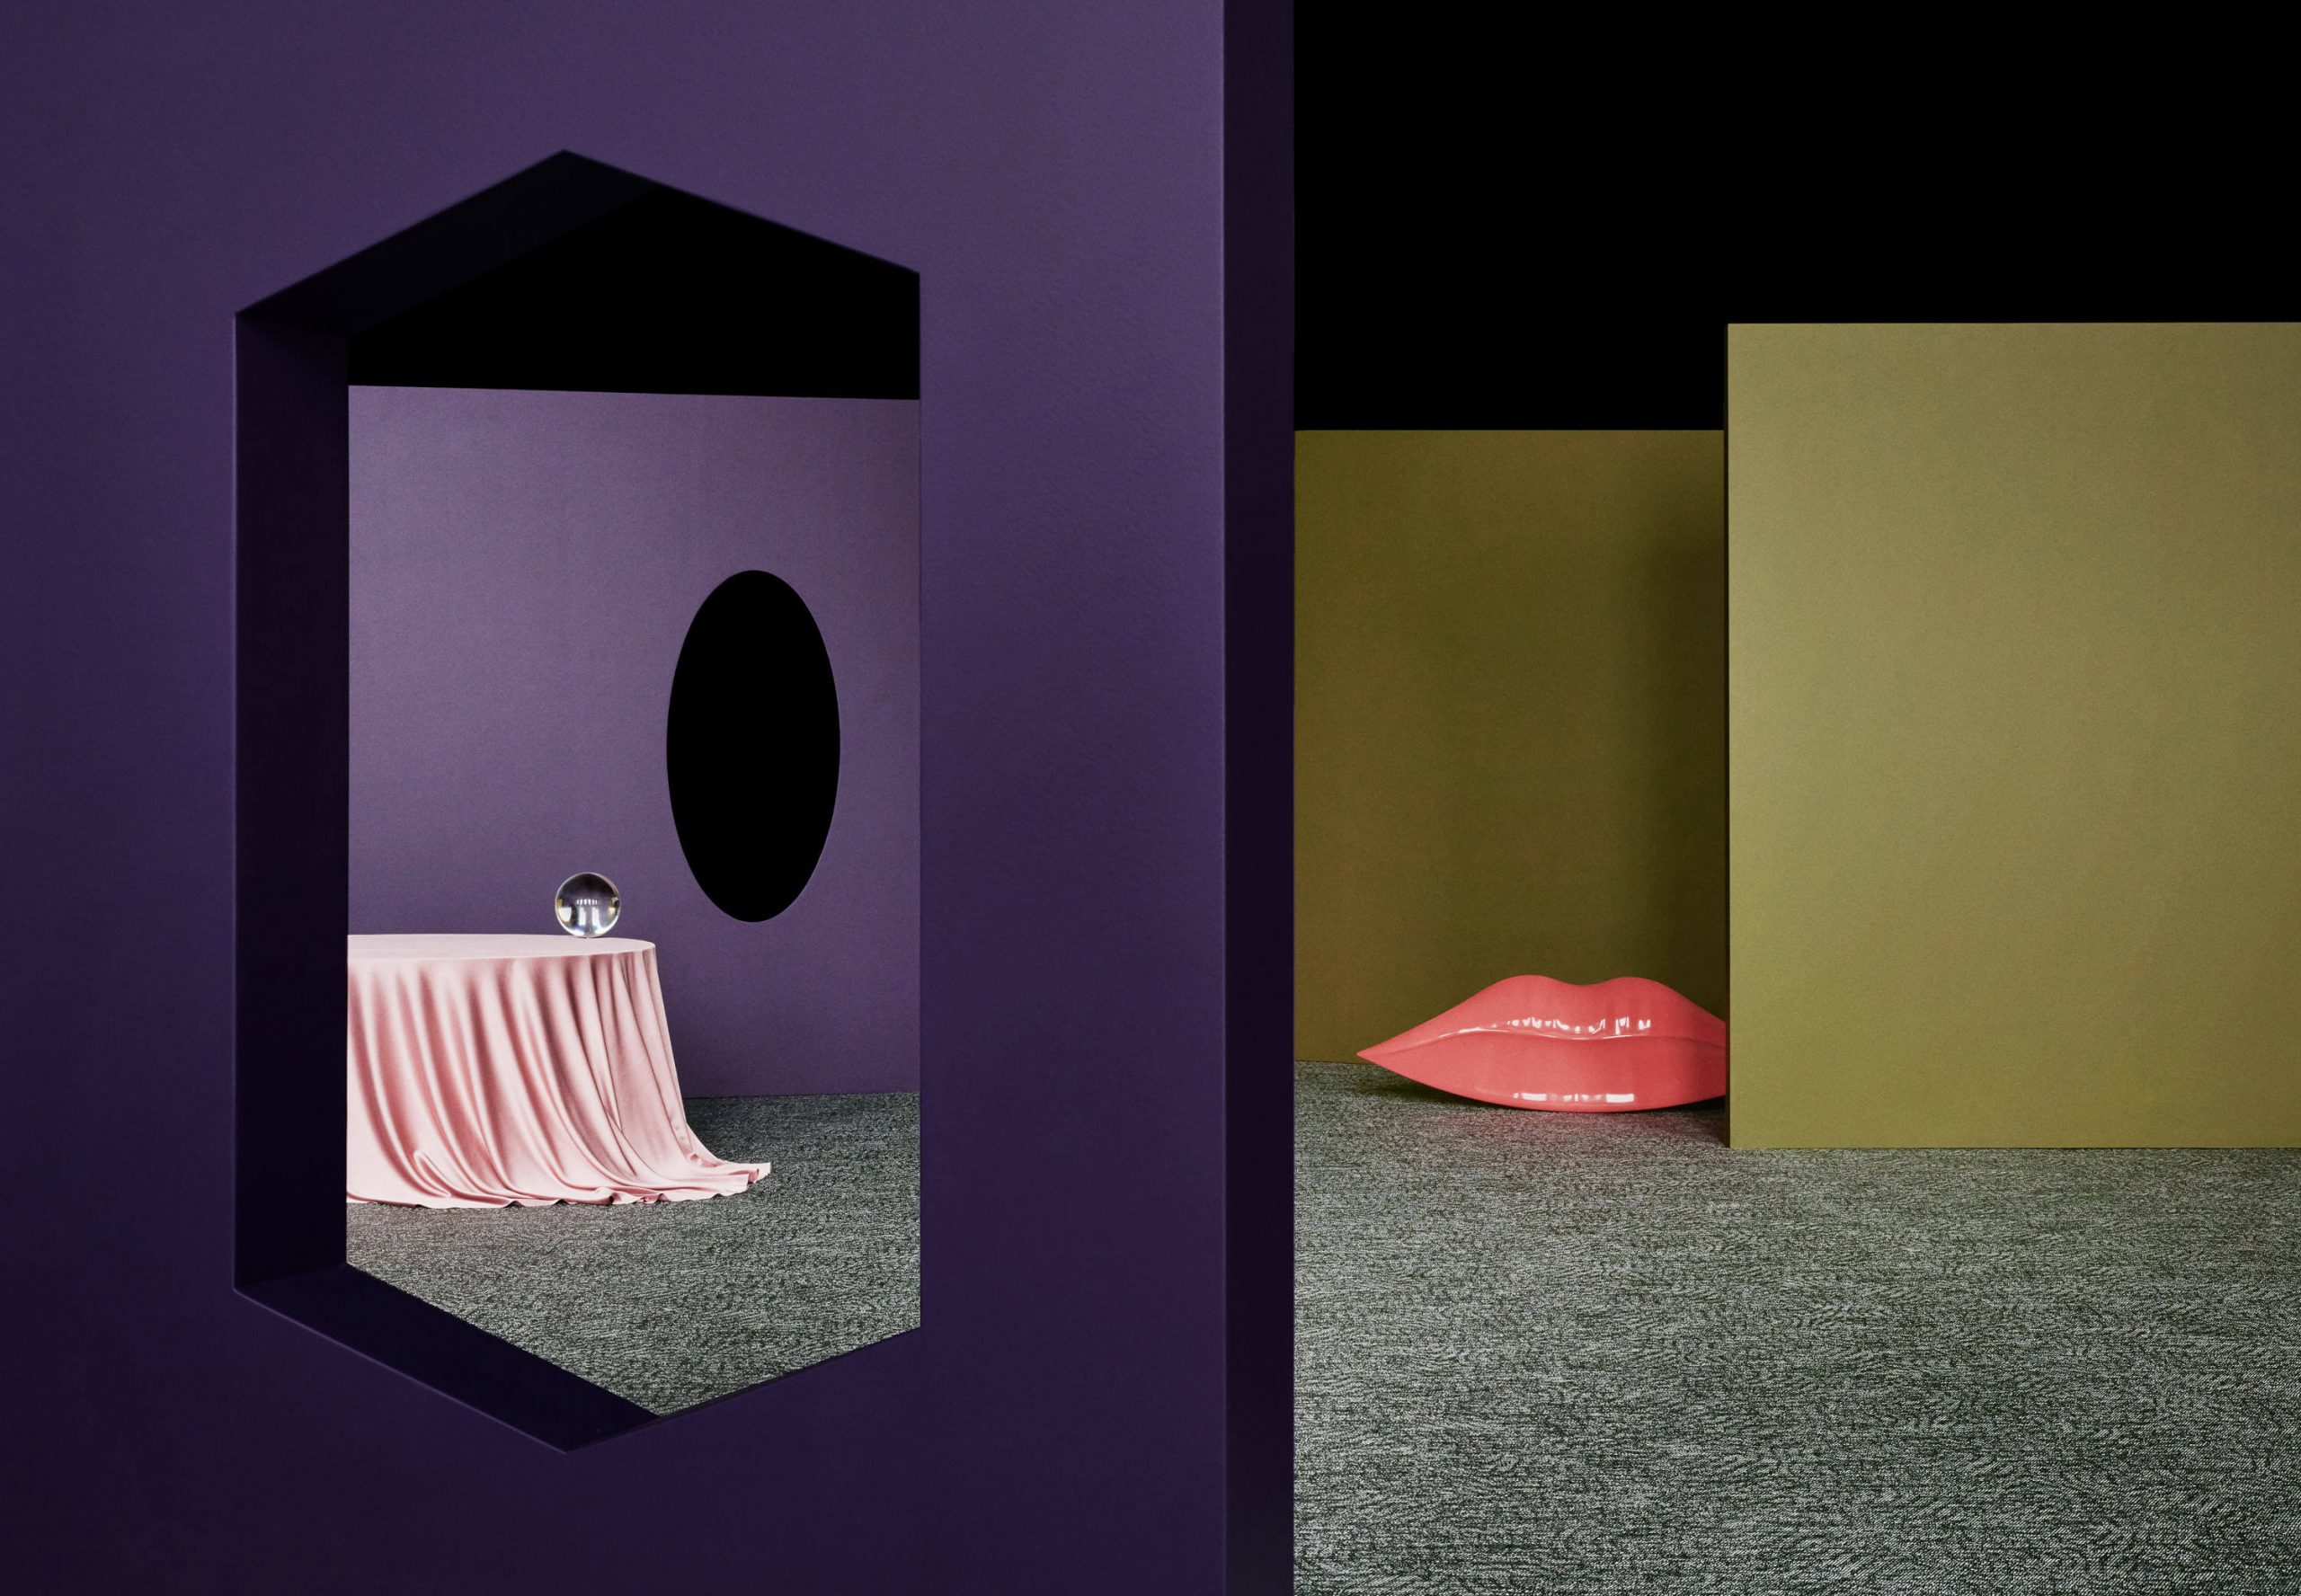 In 2019, Bolon Celebrates Diversity With a New Collection